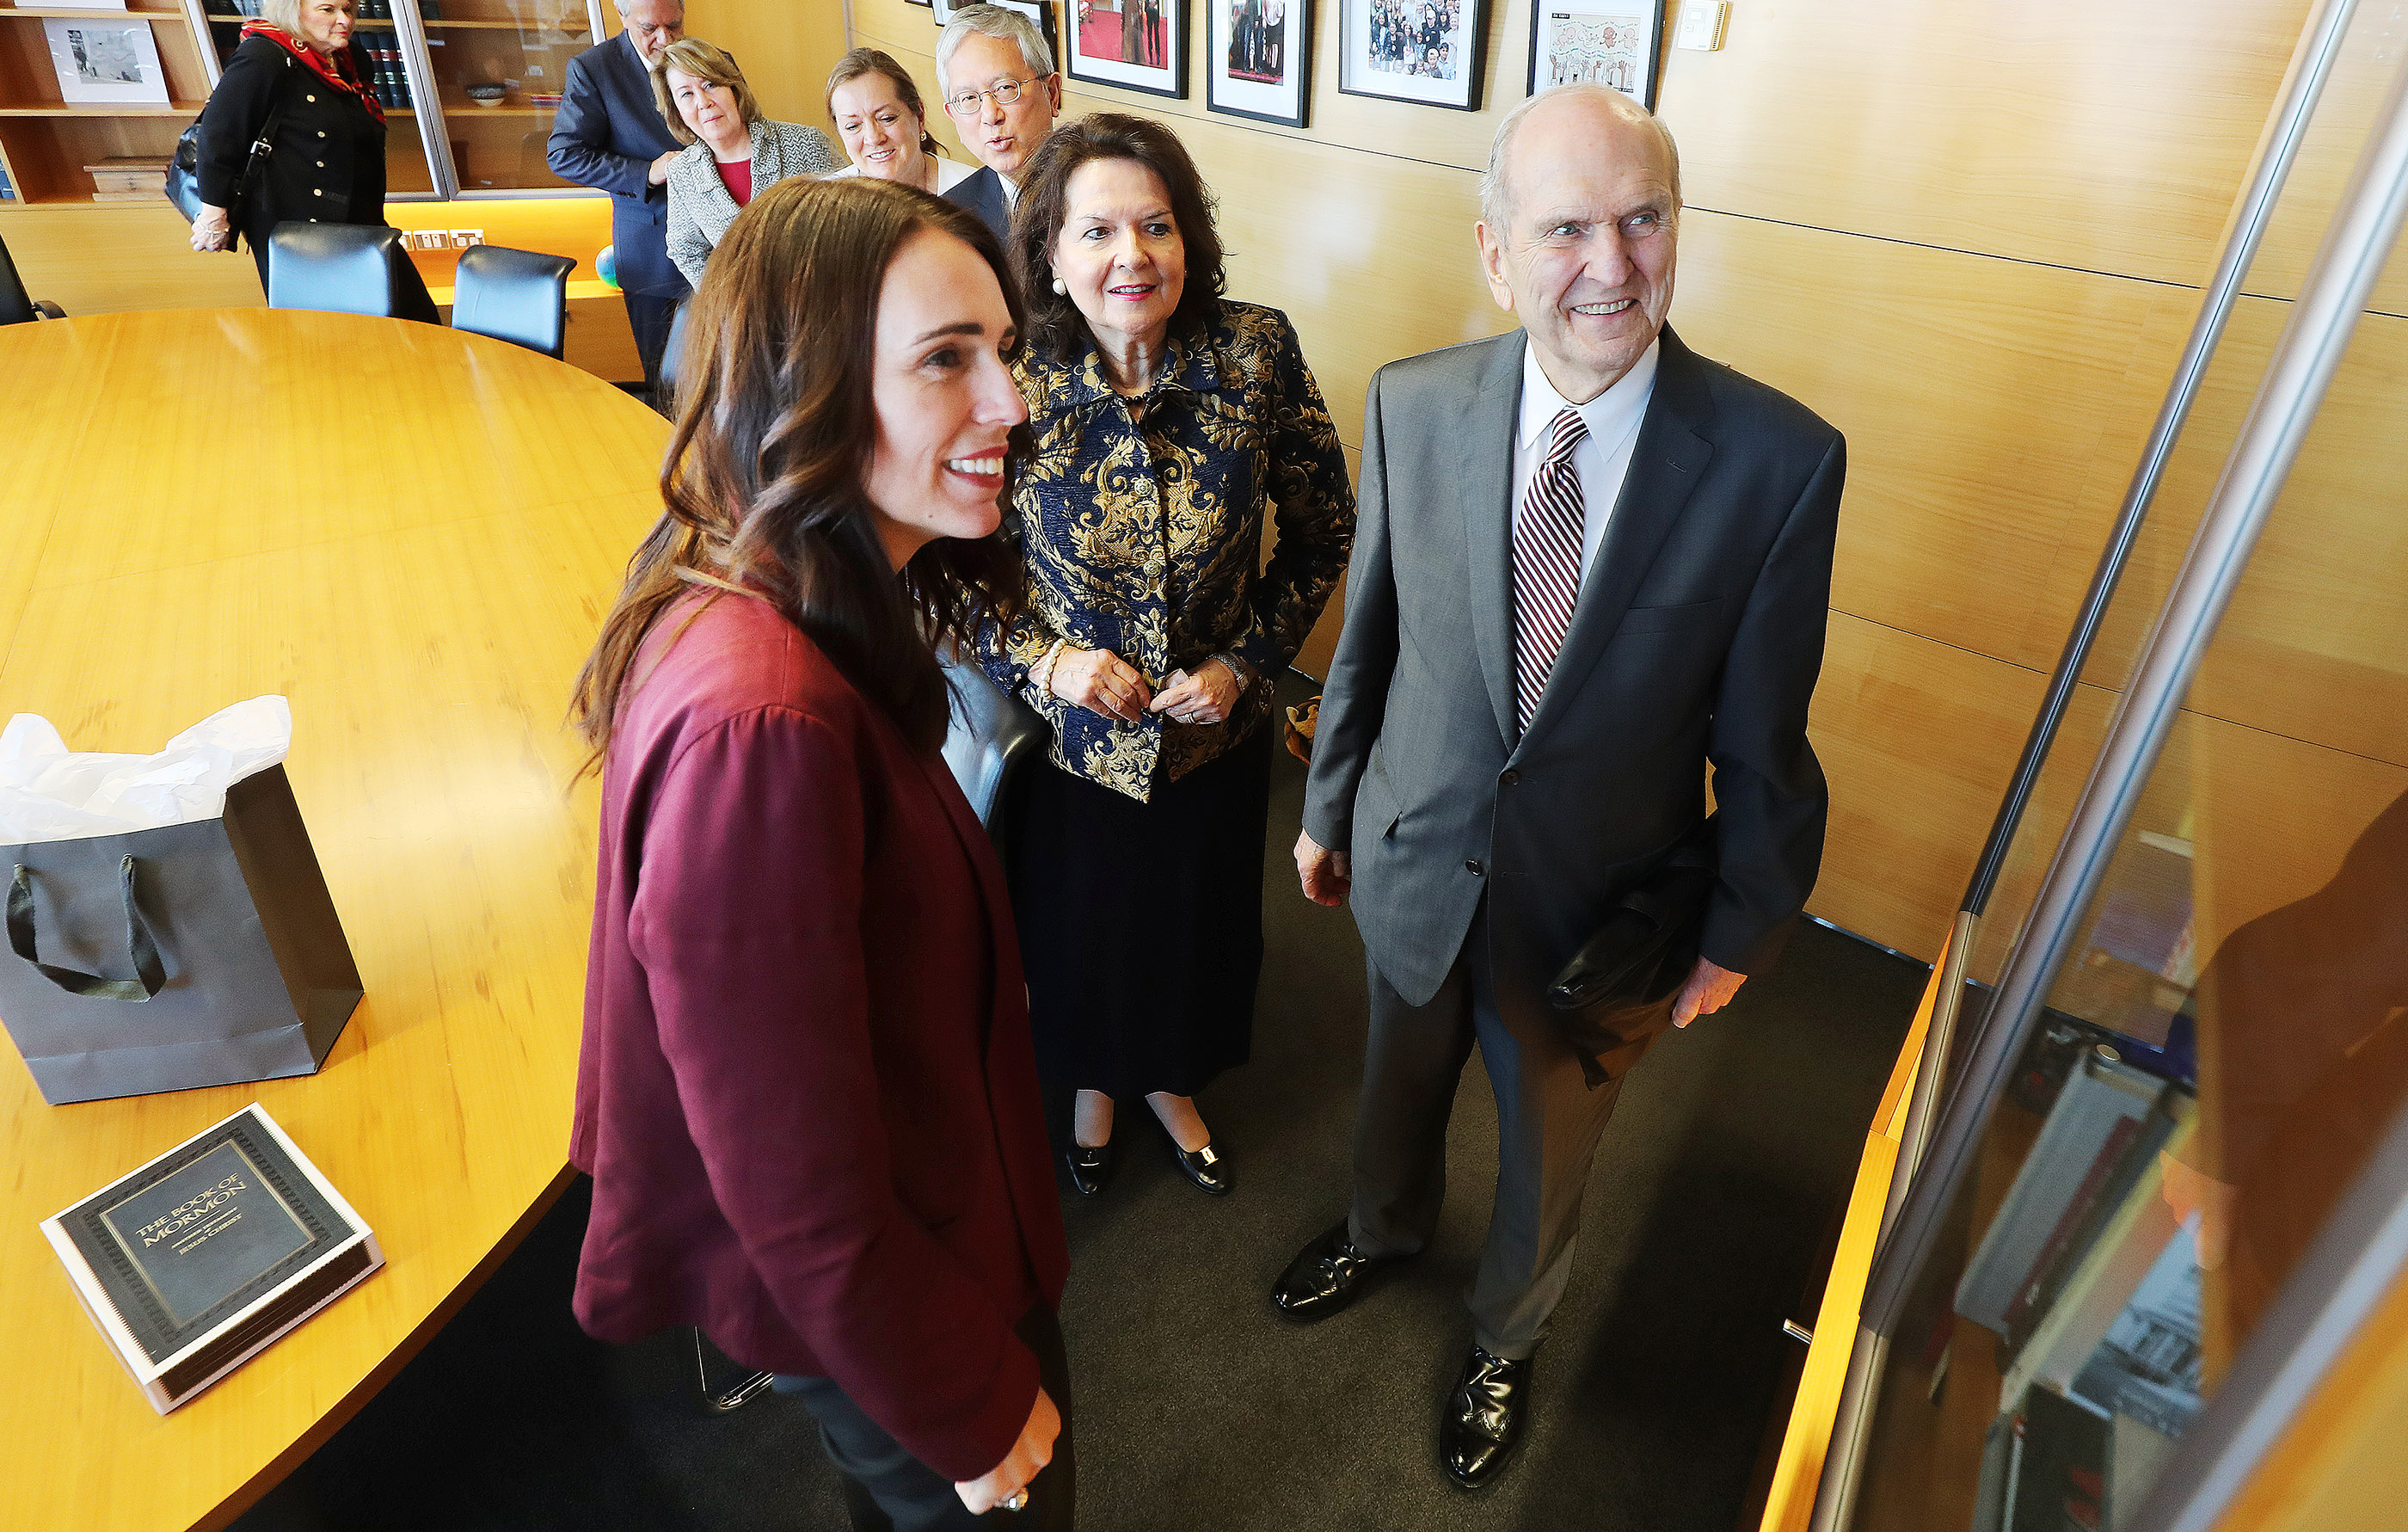 President Russell M. Nelson of The Church of Jesus Christ of Latter-day Saints and his wife, Sister Wendy Nelson, look over office-displayed items with New Zealand Prime Minister Jacinda Ardern in Wellington, New Zealand, on Monday May 20, 2019.